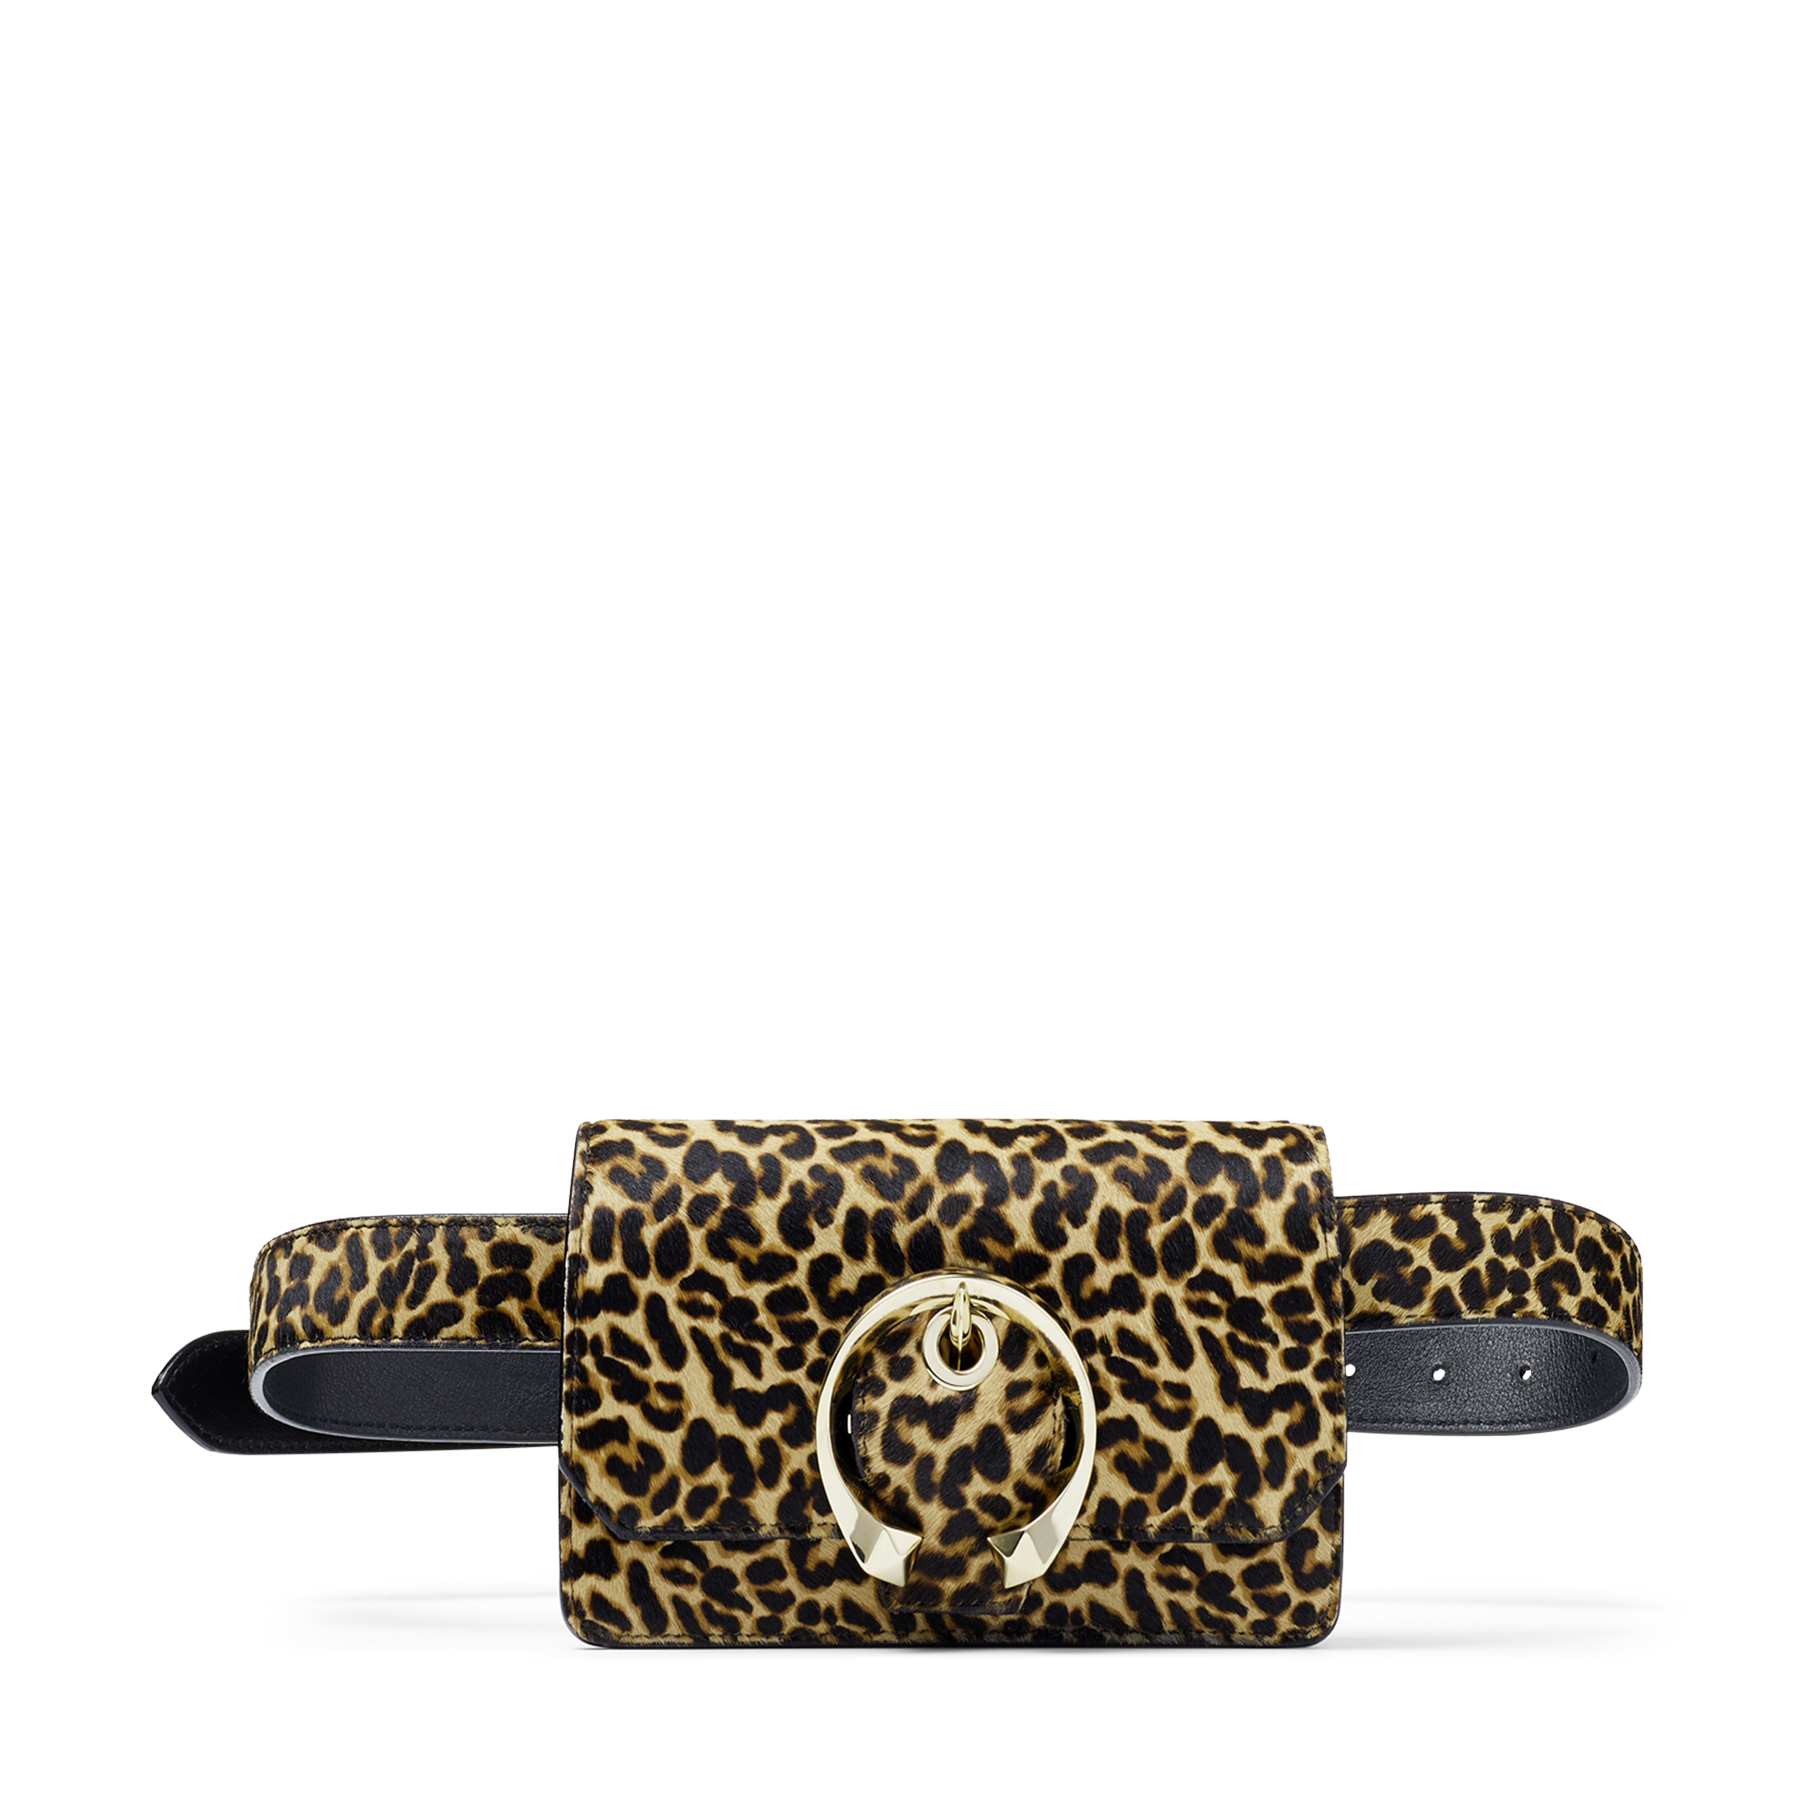 The MADELINE BELT bag in leopard print pony is a modern-classic. Offering an abundance of meticulous detailing, MADELINE hosts a unique sculpted shape. The focal statement metal buckle is beautifully moulded into a circular shape. Perfect for accentuating any day or after-dark look.